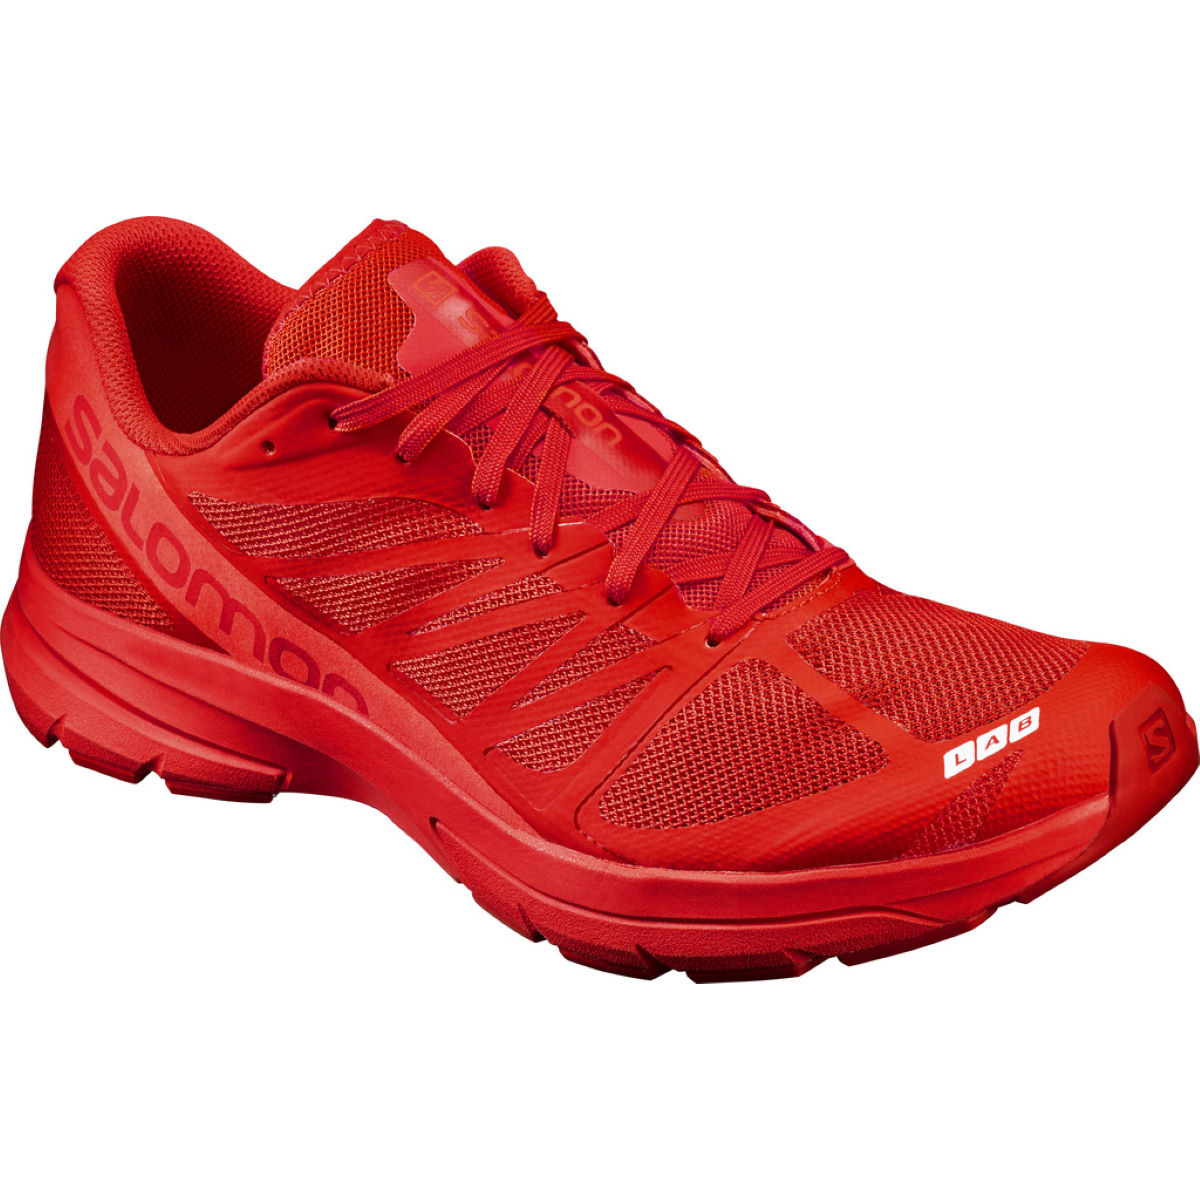 Chaussures Salomon S-Lab Sonic 2 (PE17) - 10 UK Red/Lava Chaussures de running amorties